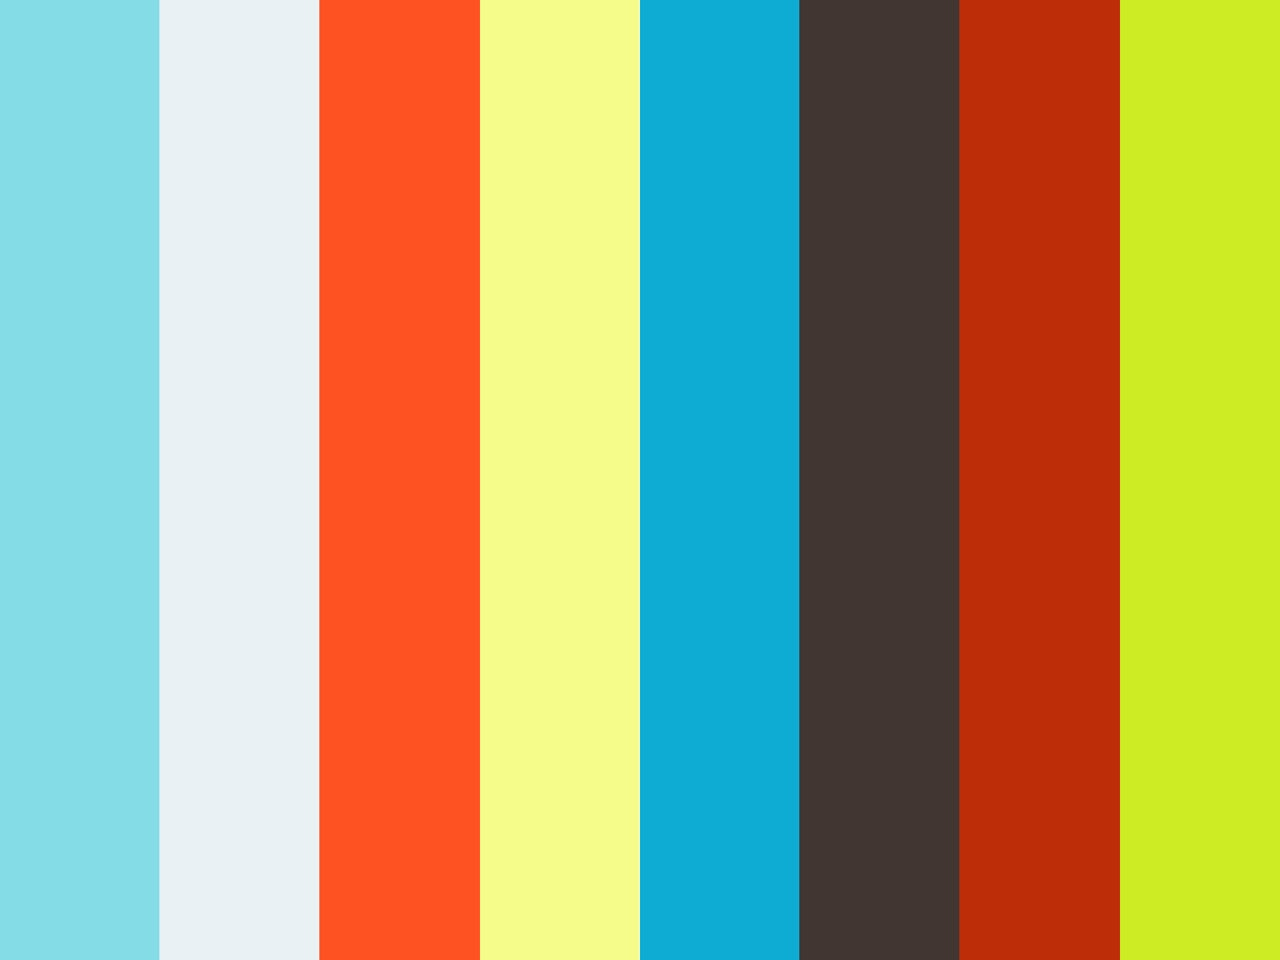 Brilliant 40 colors and meanings inspiration of best 25 color colors and meanings the spiritual meaning of colors on vimeo geenschuldenfo Images